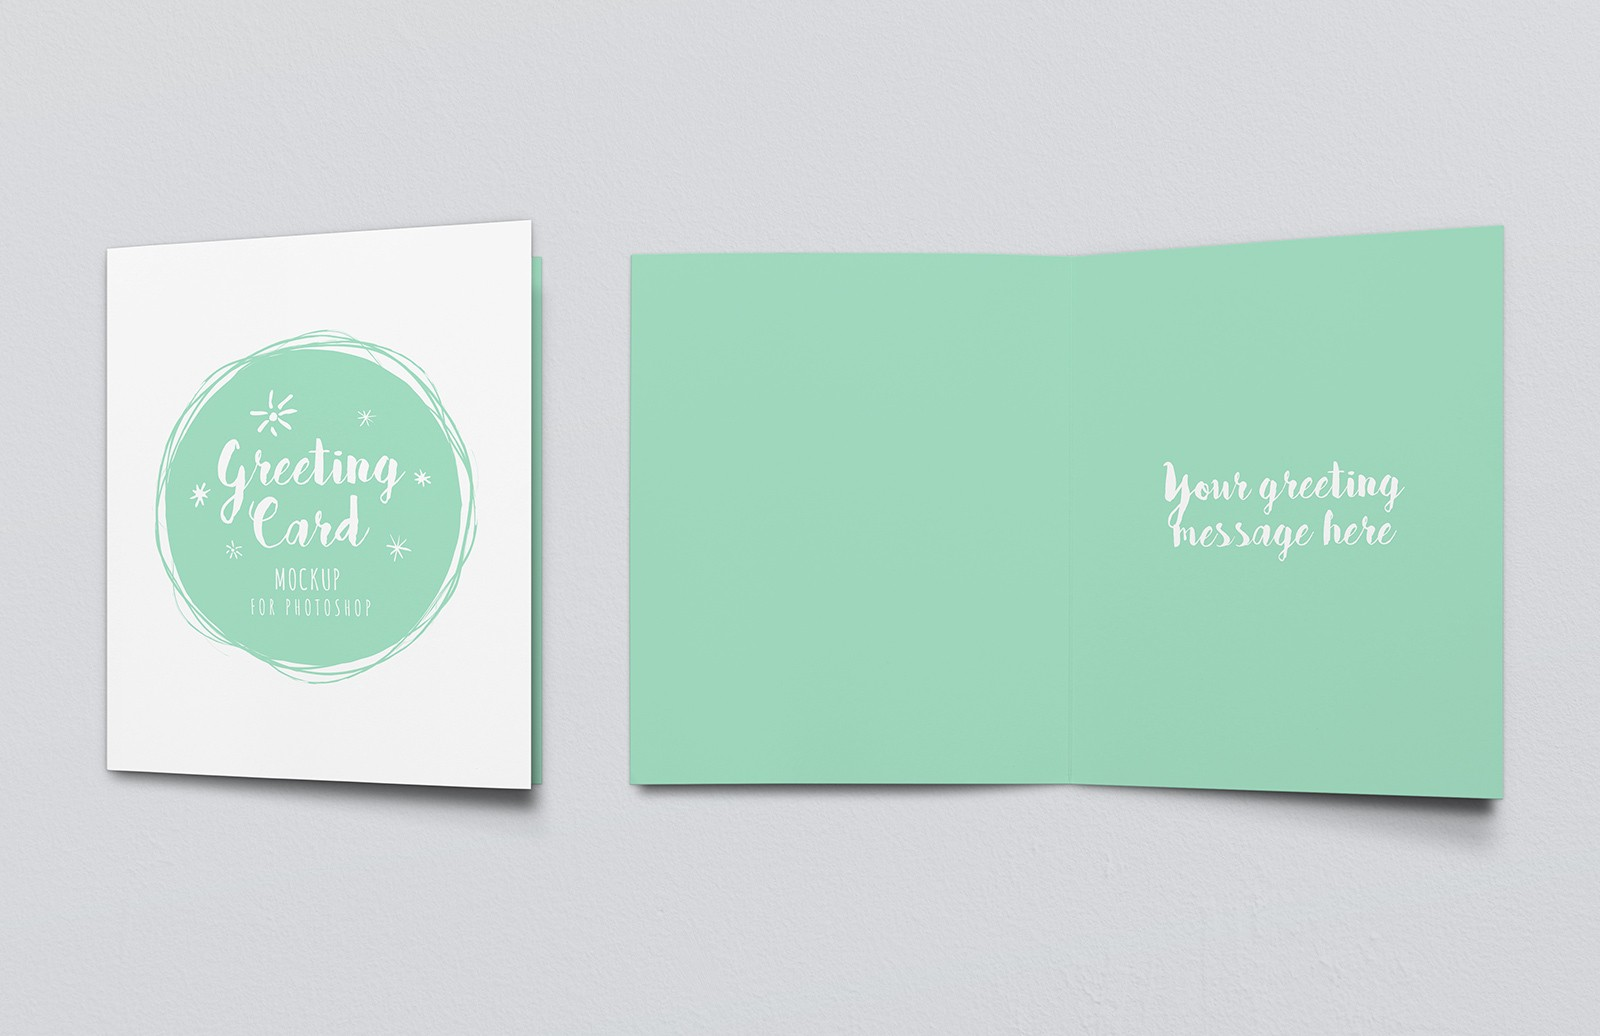 Greeting Card Mockup - Vol 2